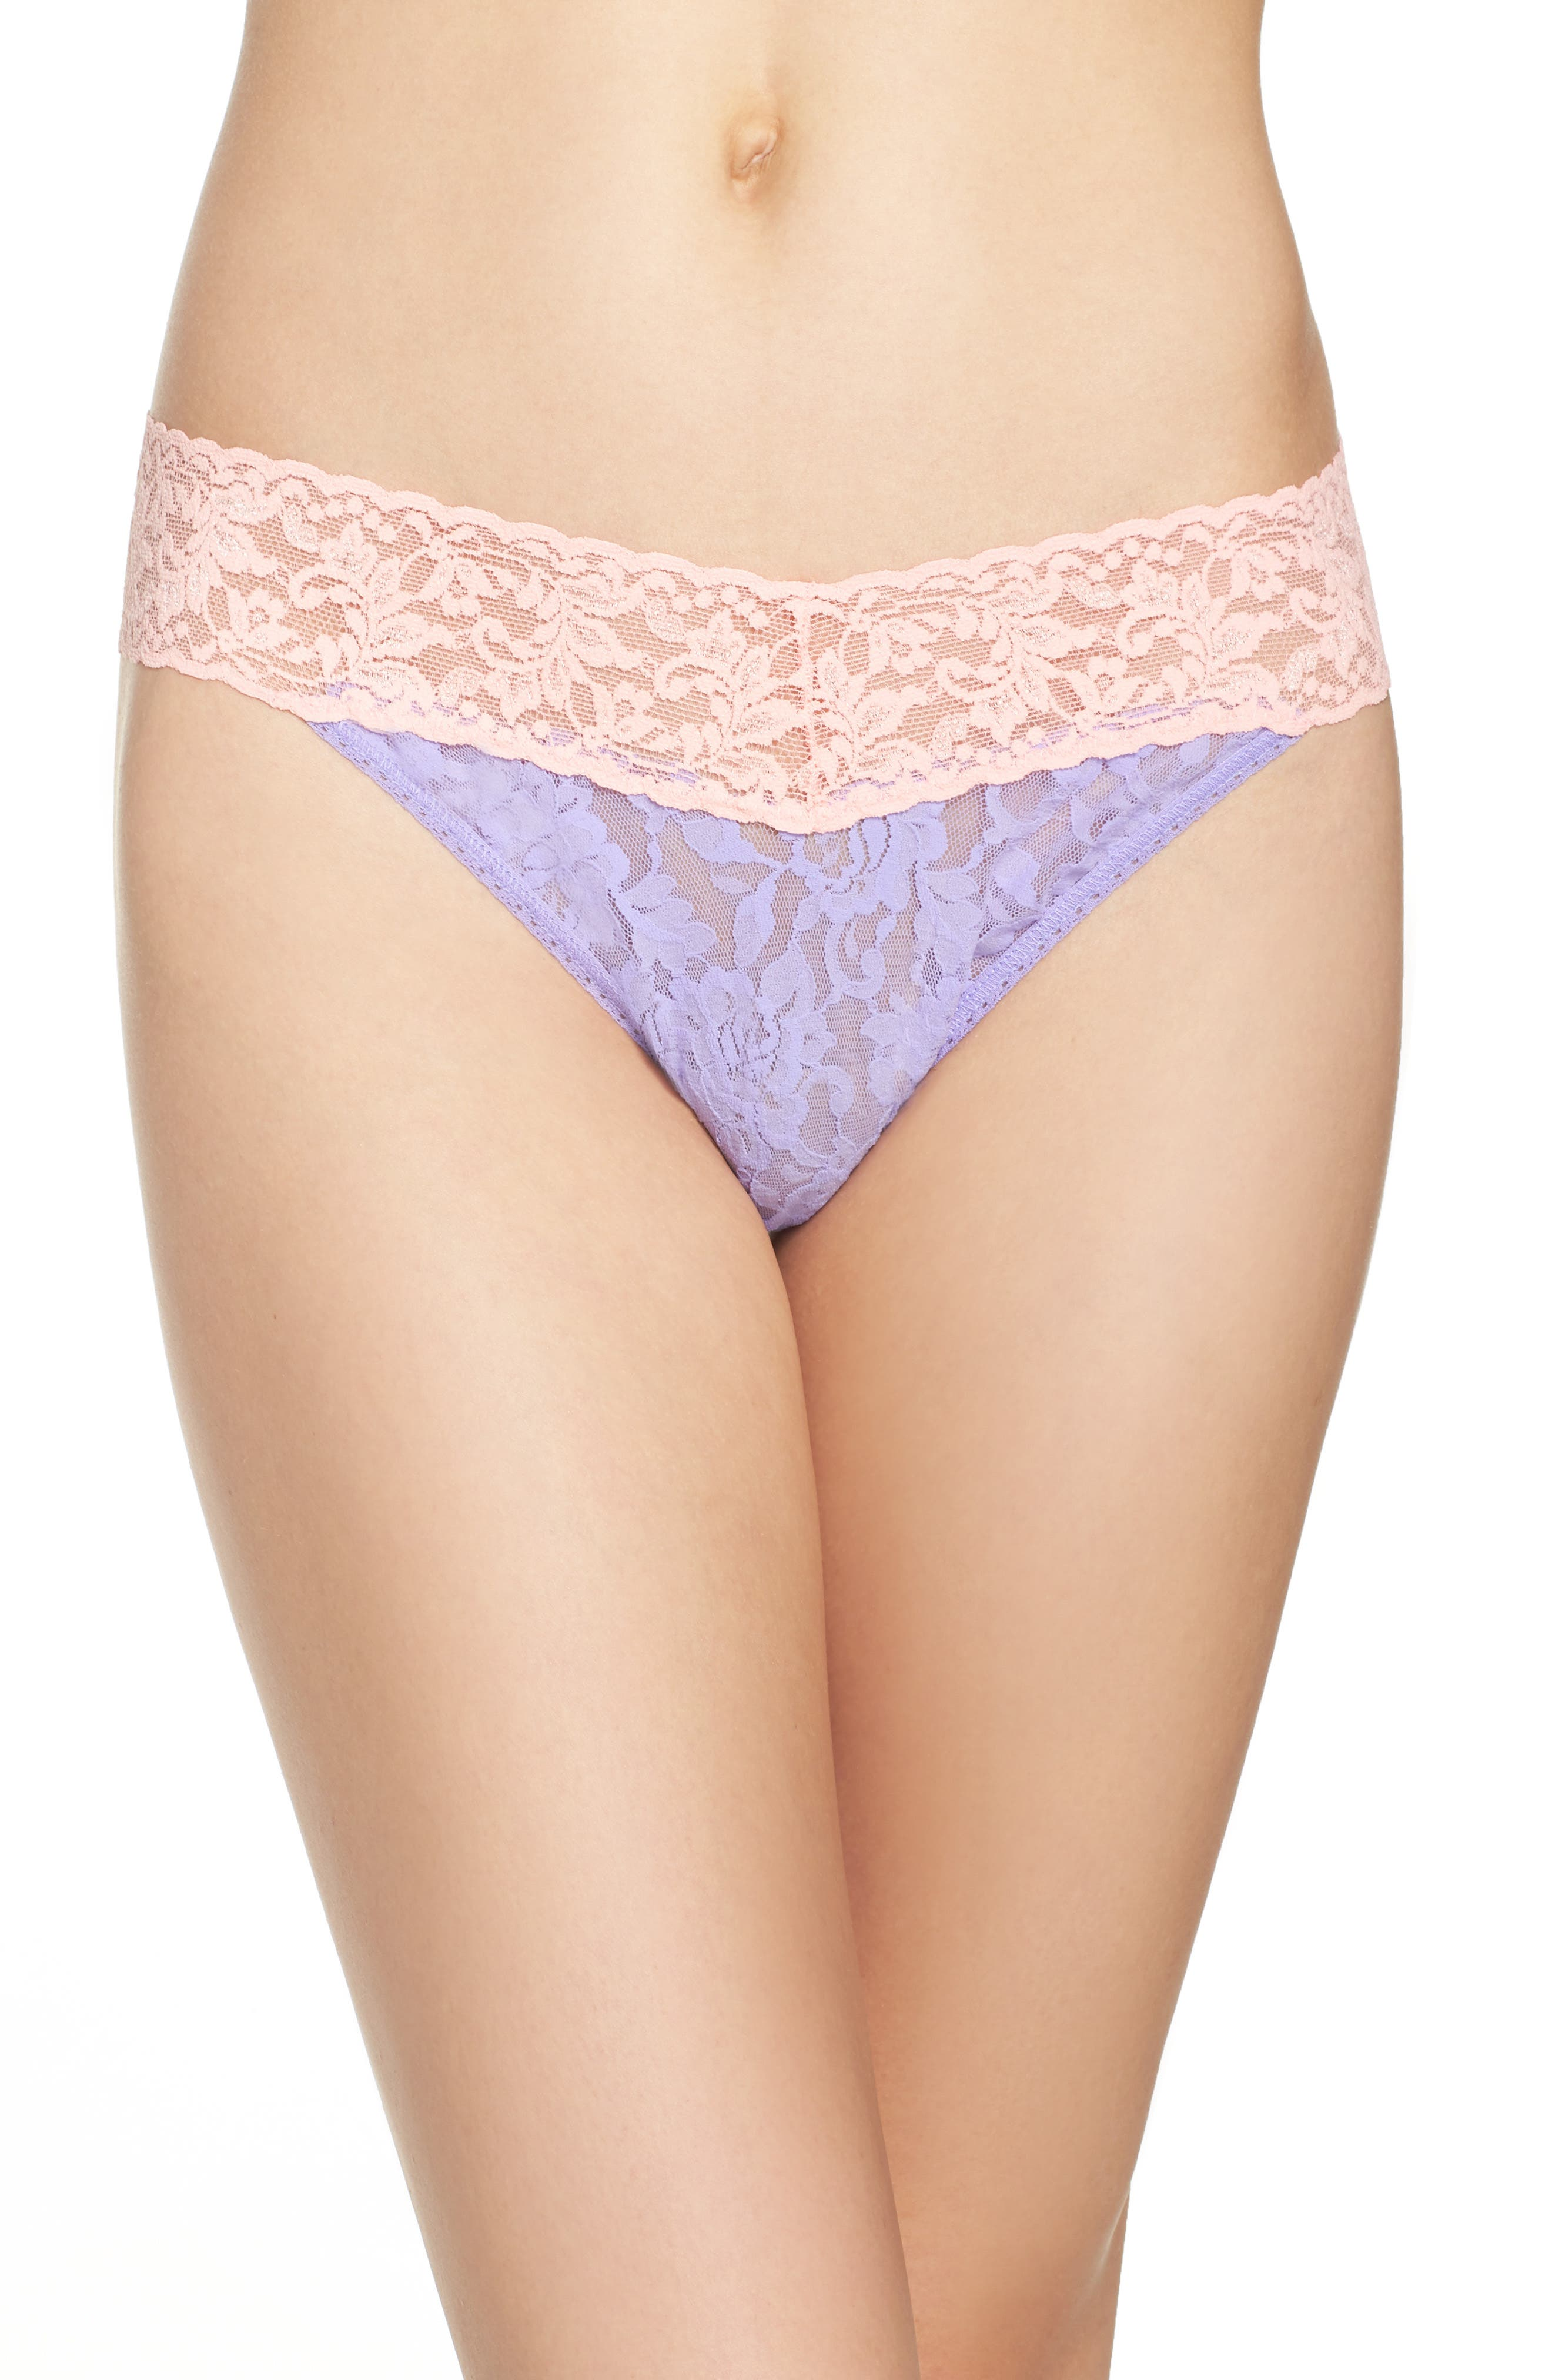 Alternate Image 1 Selected - Hanky Panky 'Colorplay' Regular Rise Thong